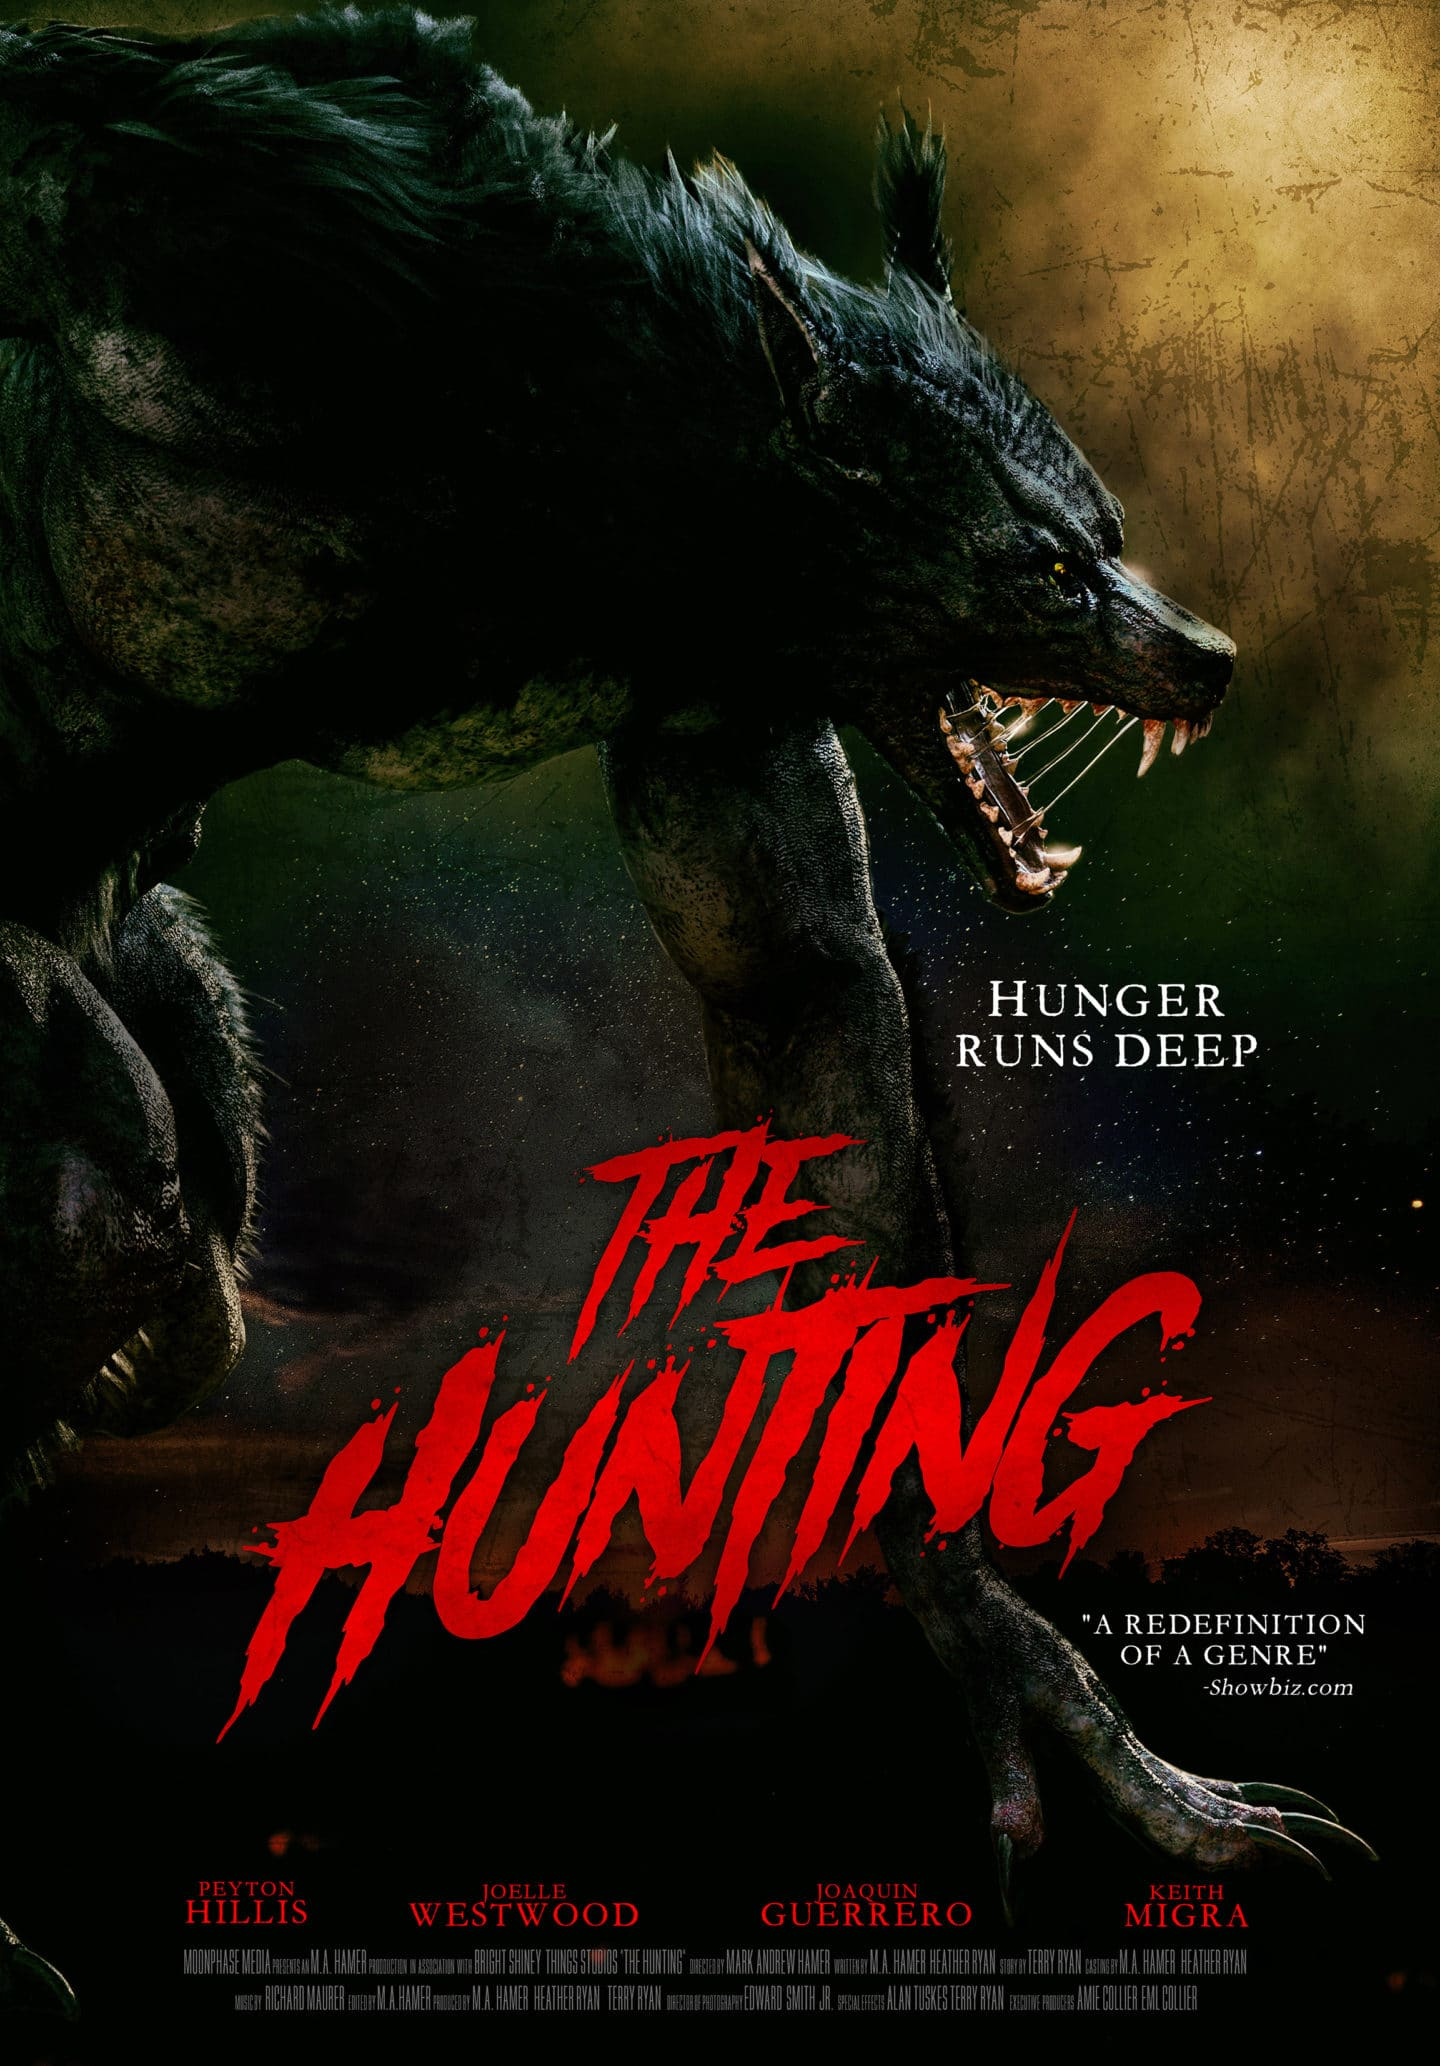 The Hunting – Teaser Poster